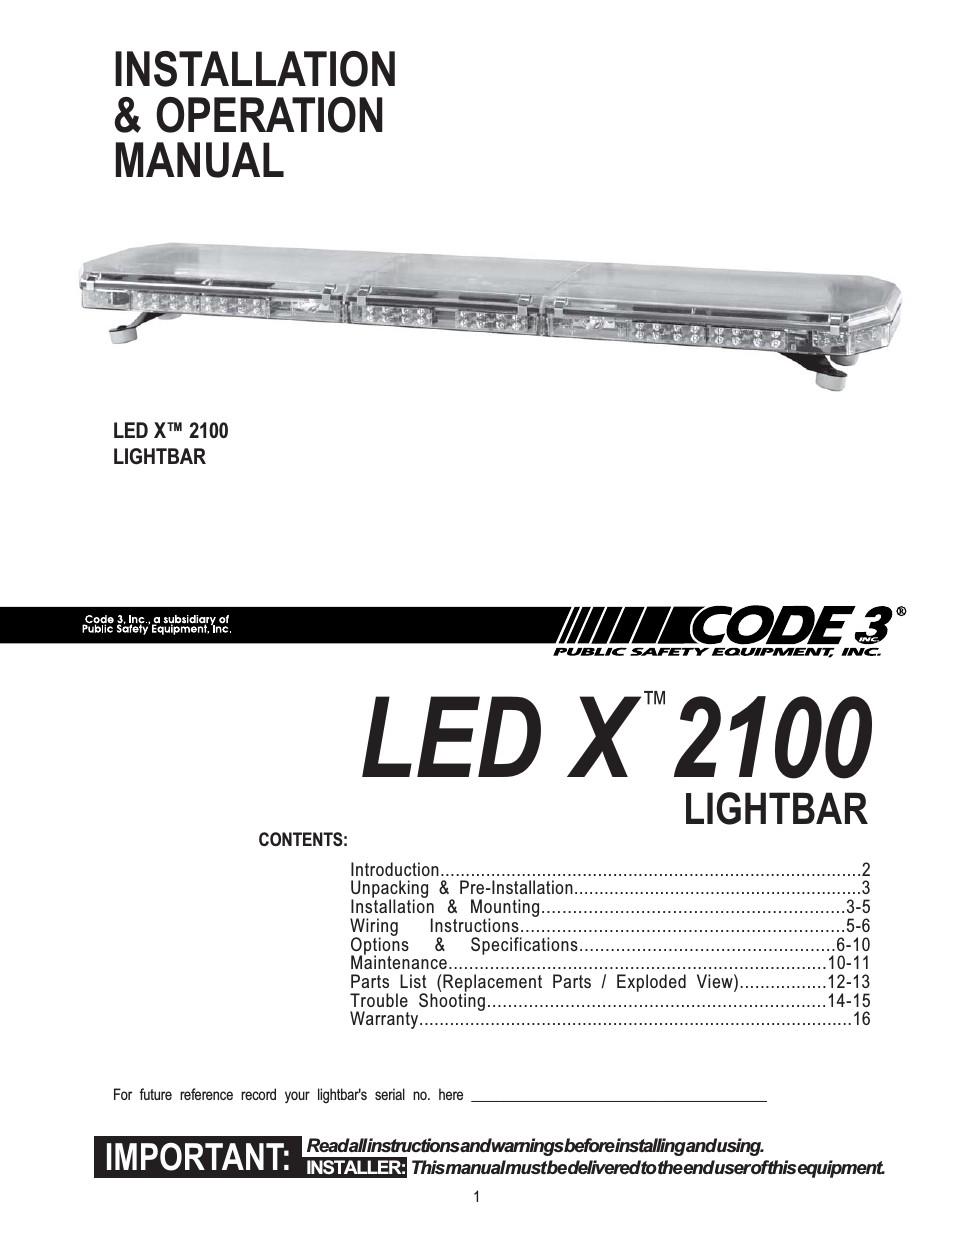 Led X 2100 Wiring Diagram Diagrams Source Dimmer Switch Mx 7000 Schematics Rocker